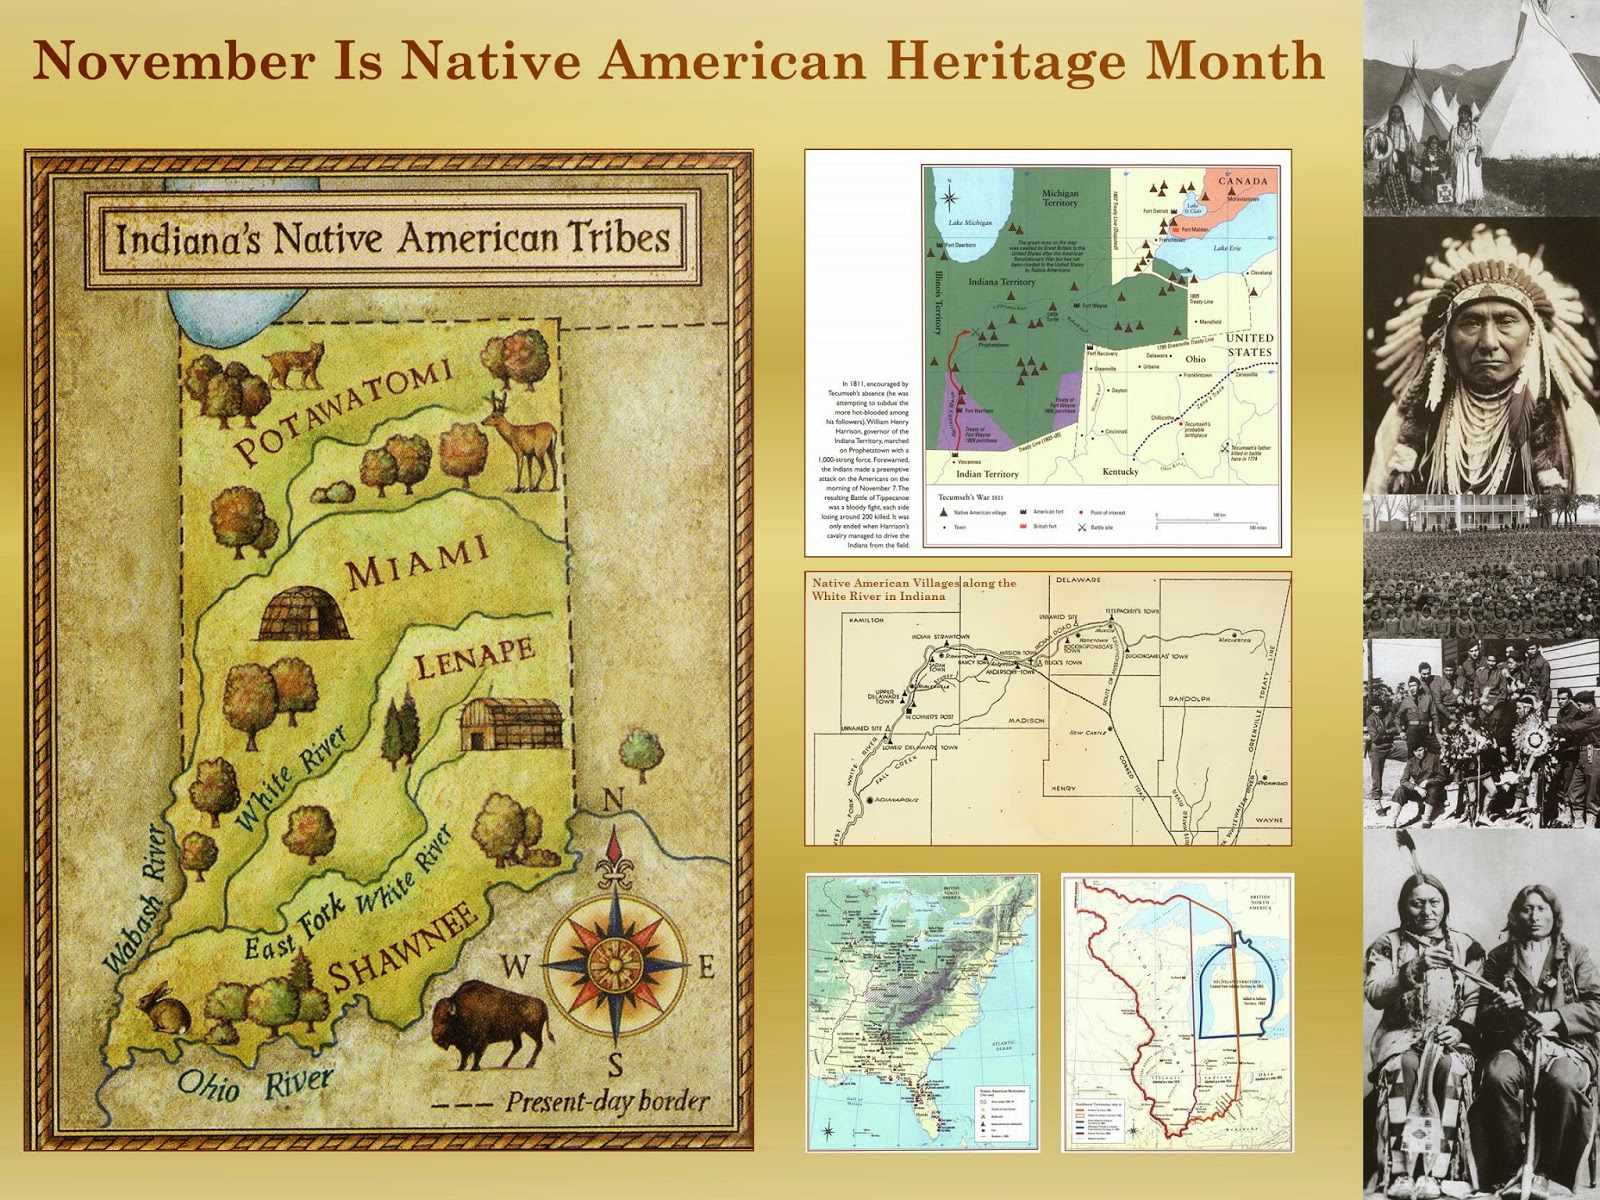 native american heritage month map exhibit at ball state university libraries